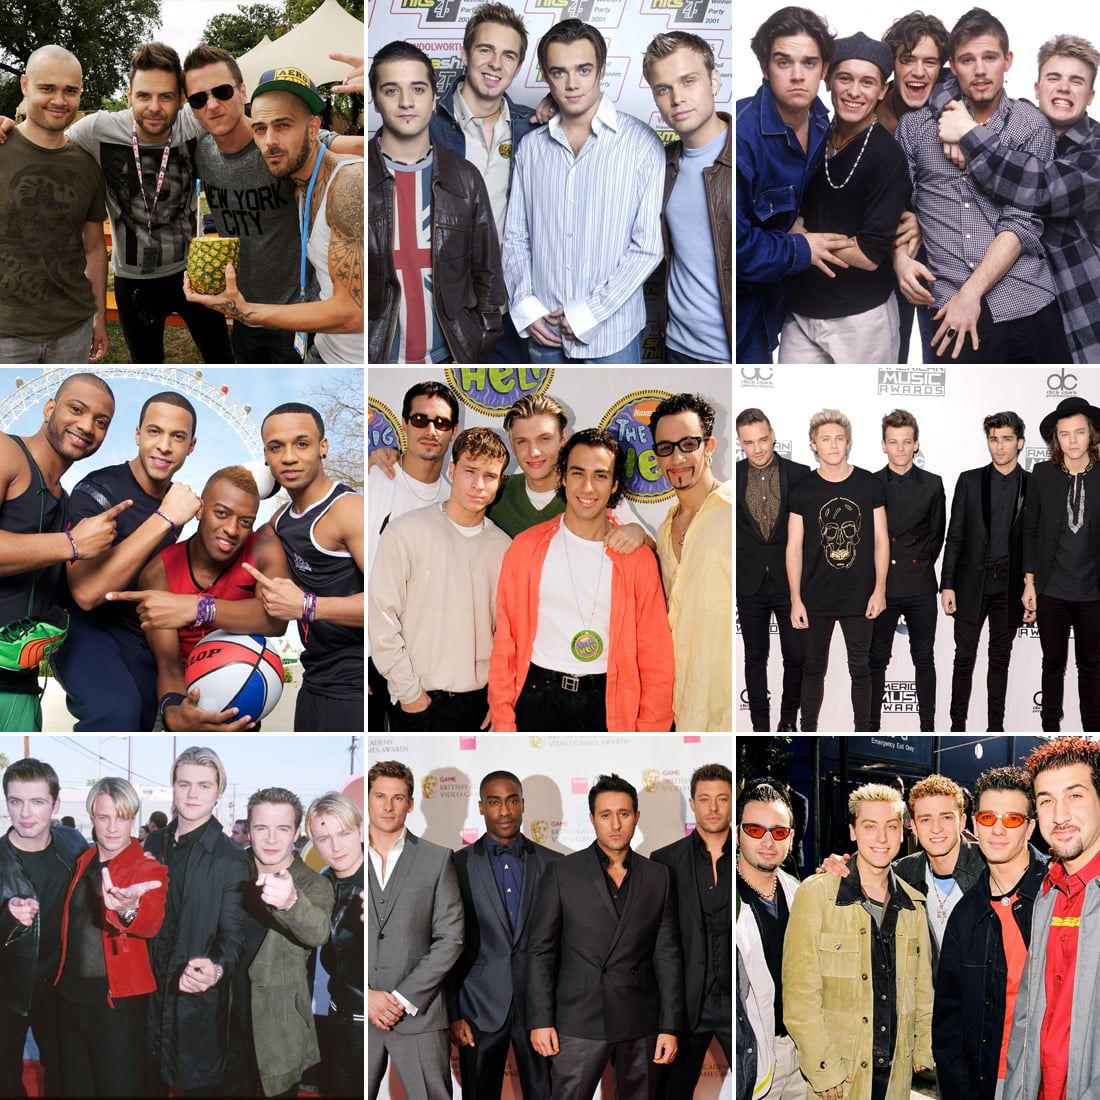 the facts gettyimages hive bands nsync justintimberlake boy best bee about hob fun